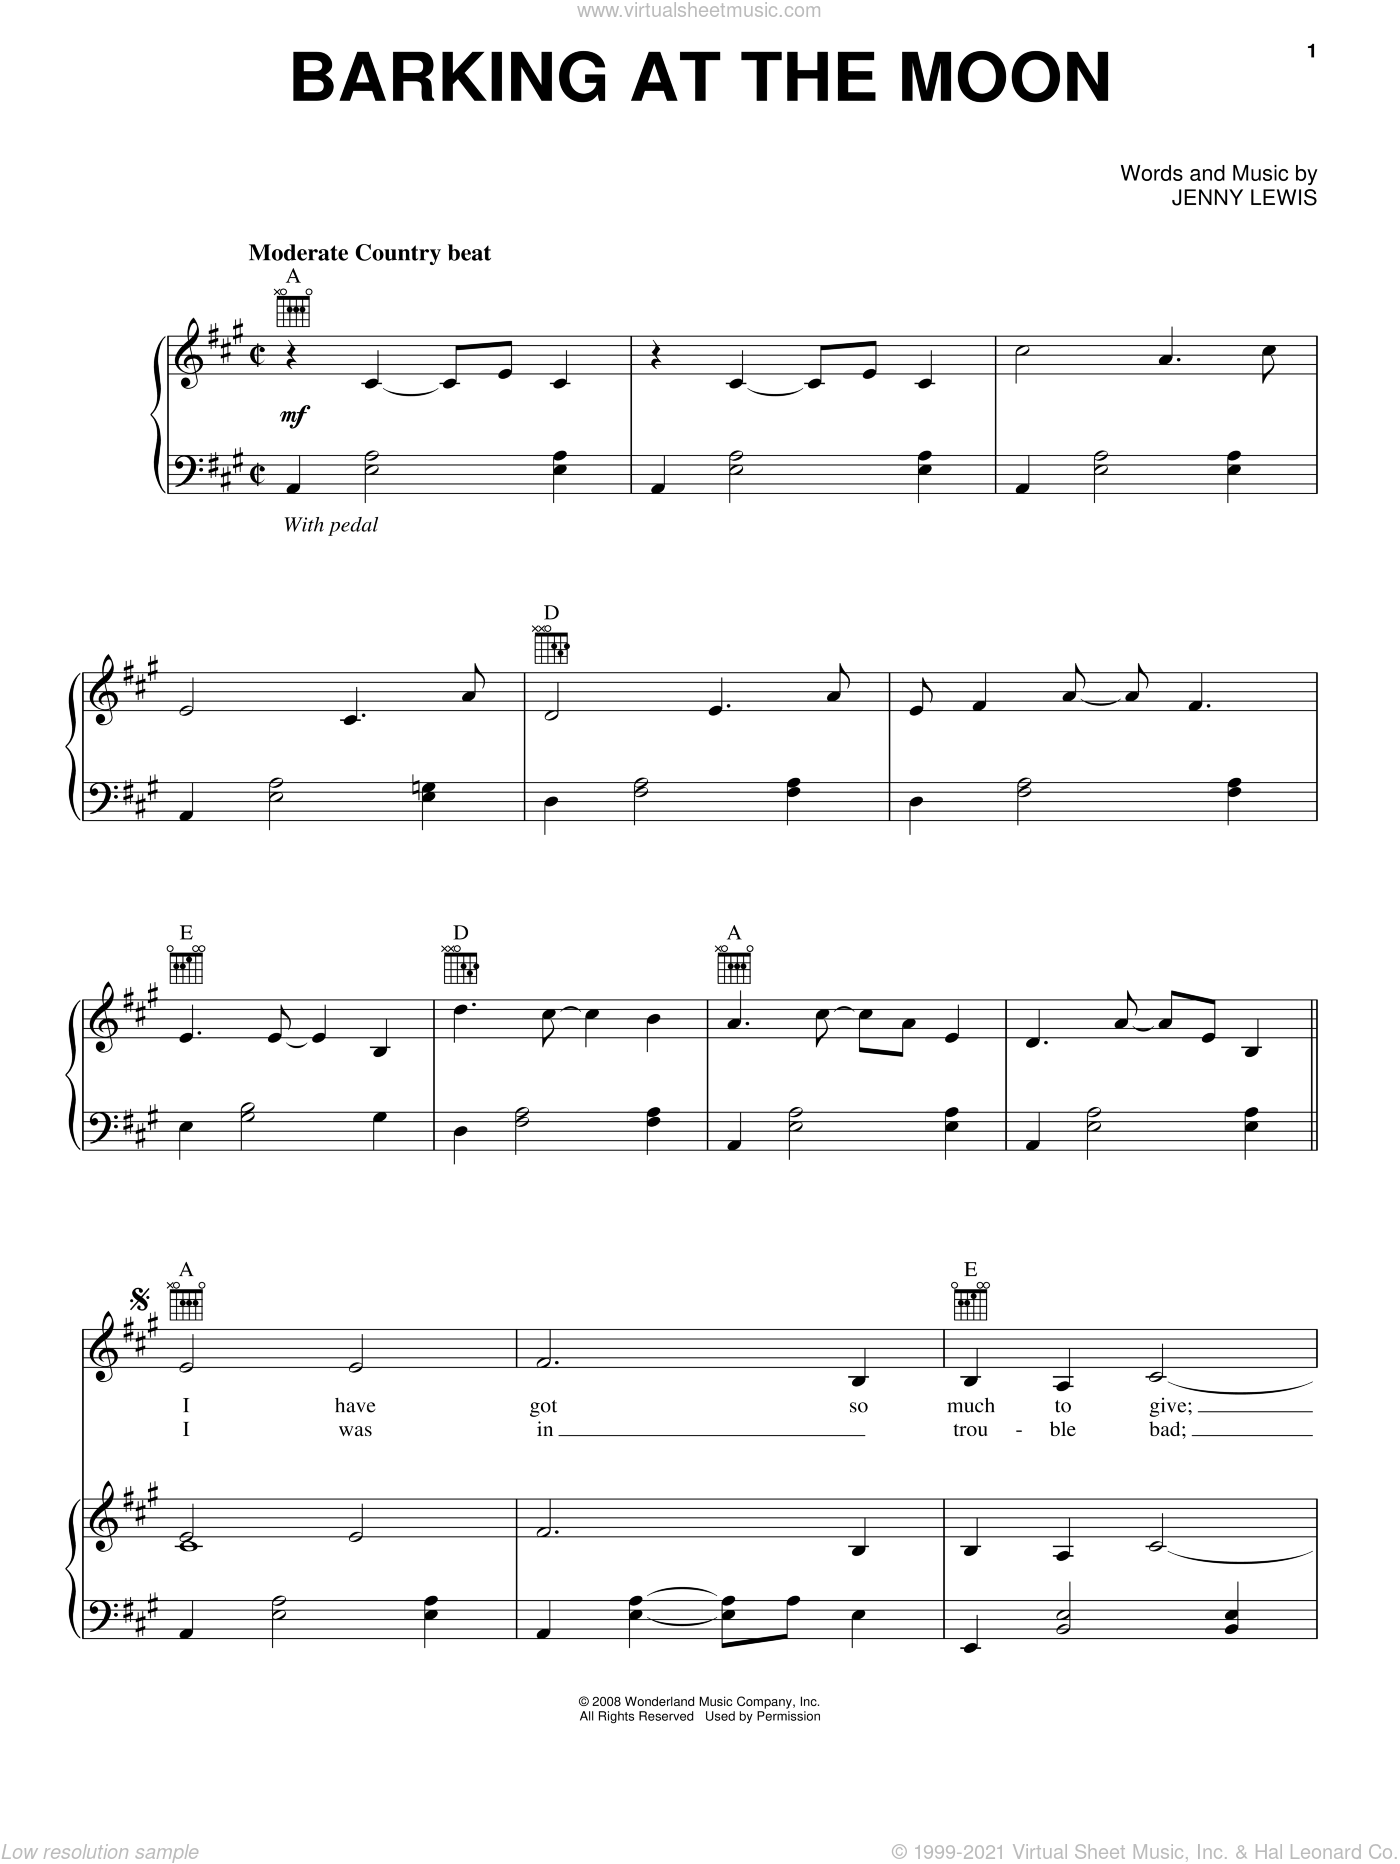 Barking At The Moon sheet music for voice, piano or guitar by Jennifer Lewis. Score Image Preview.